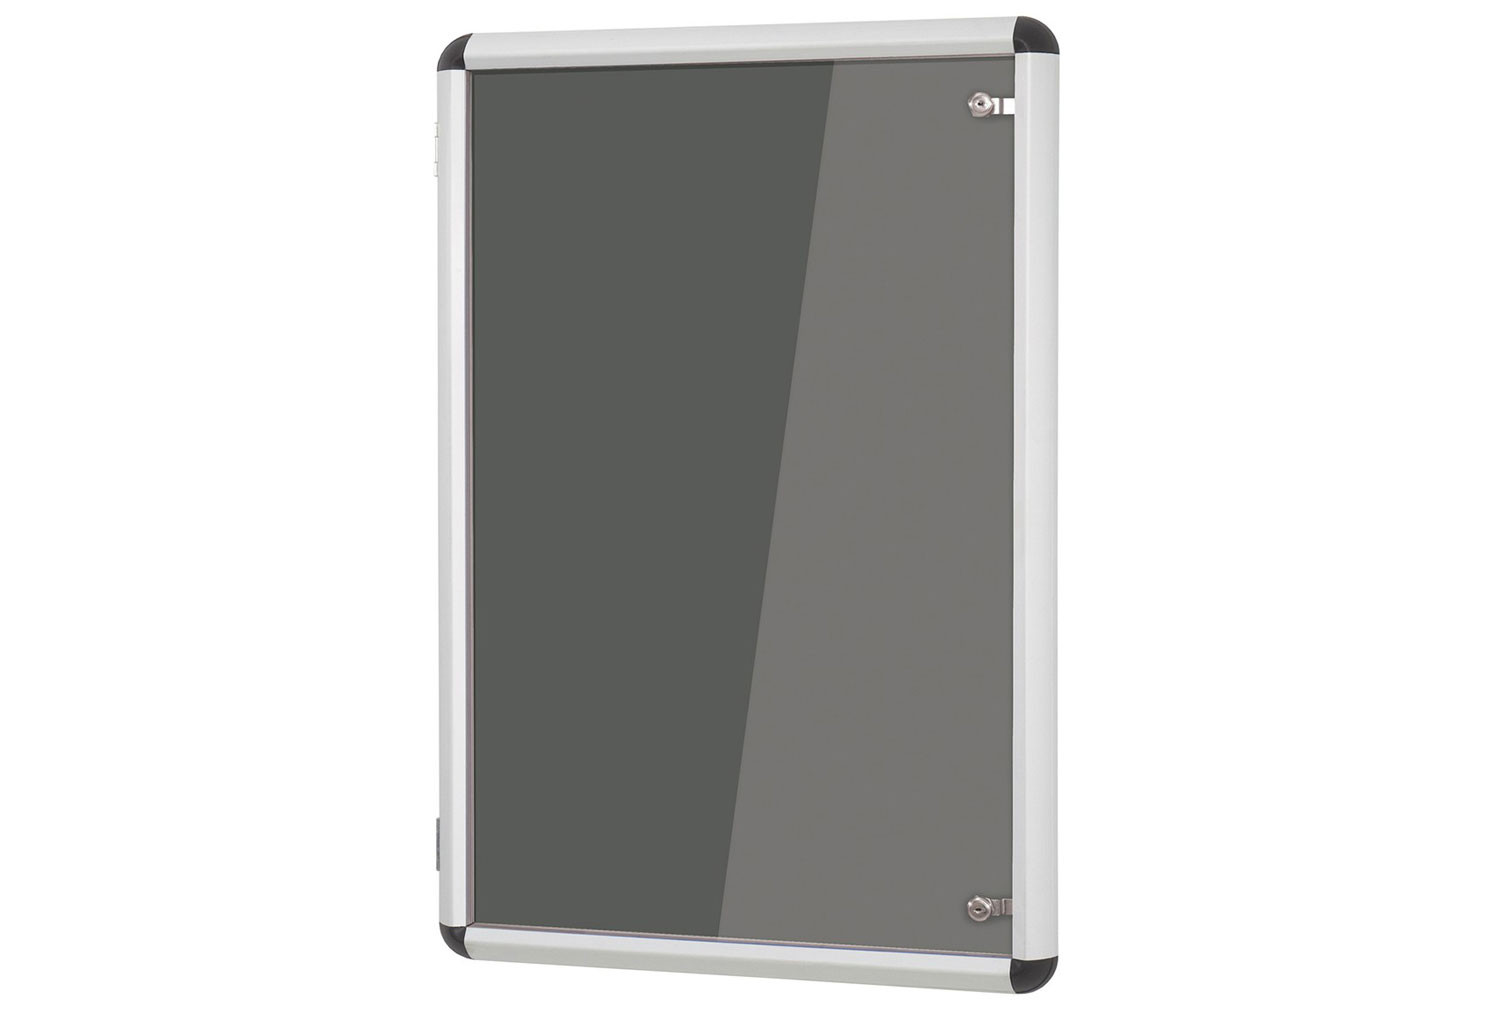 Shield Design Aluminium Framed Tamperproof Noticeboard